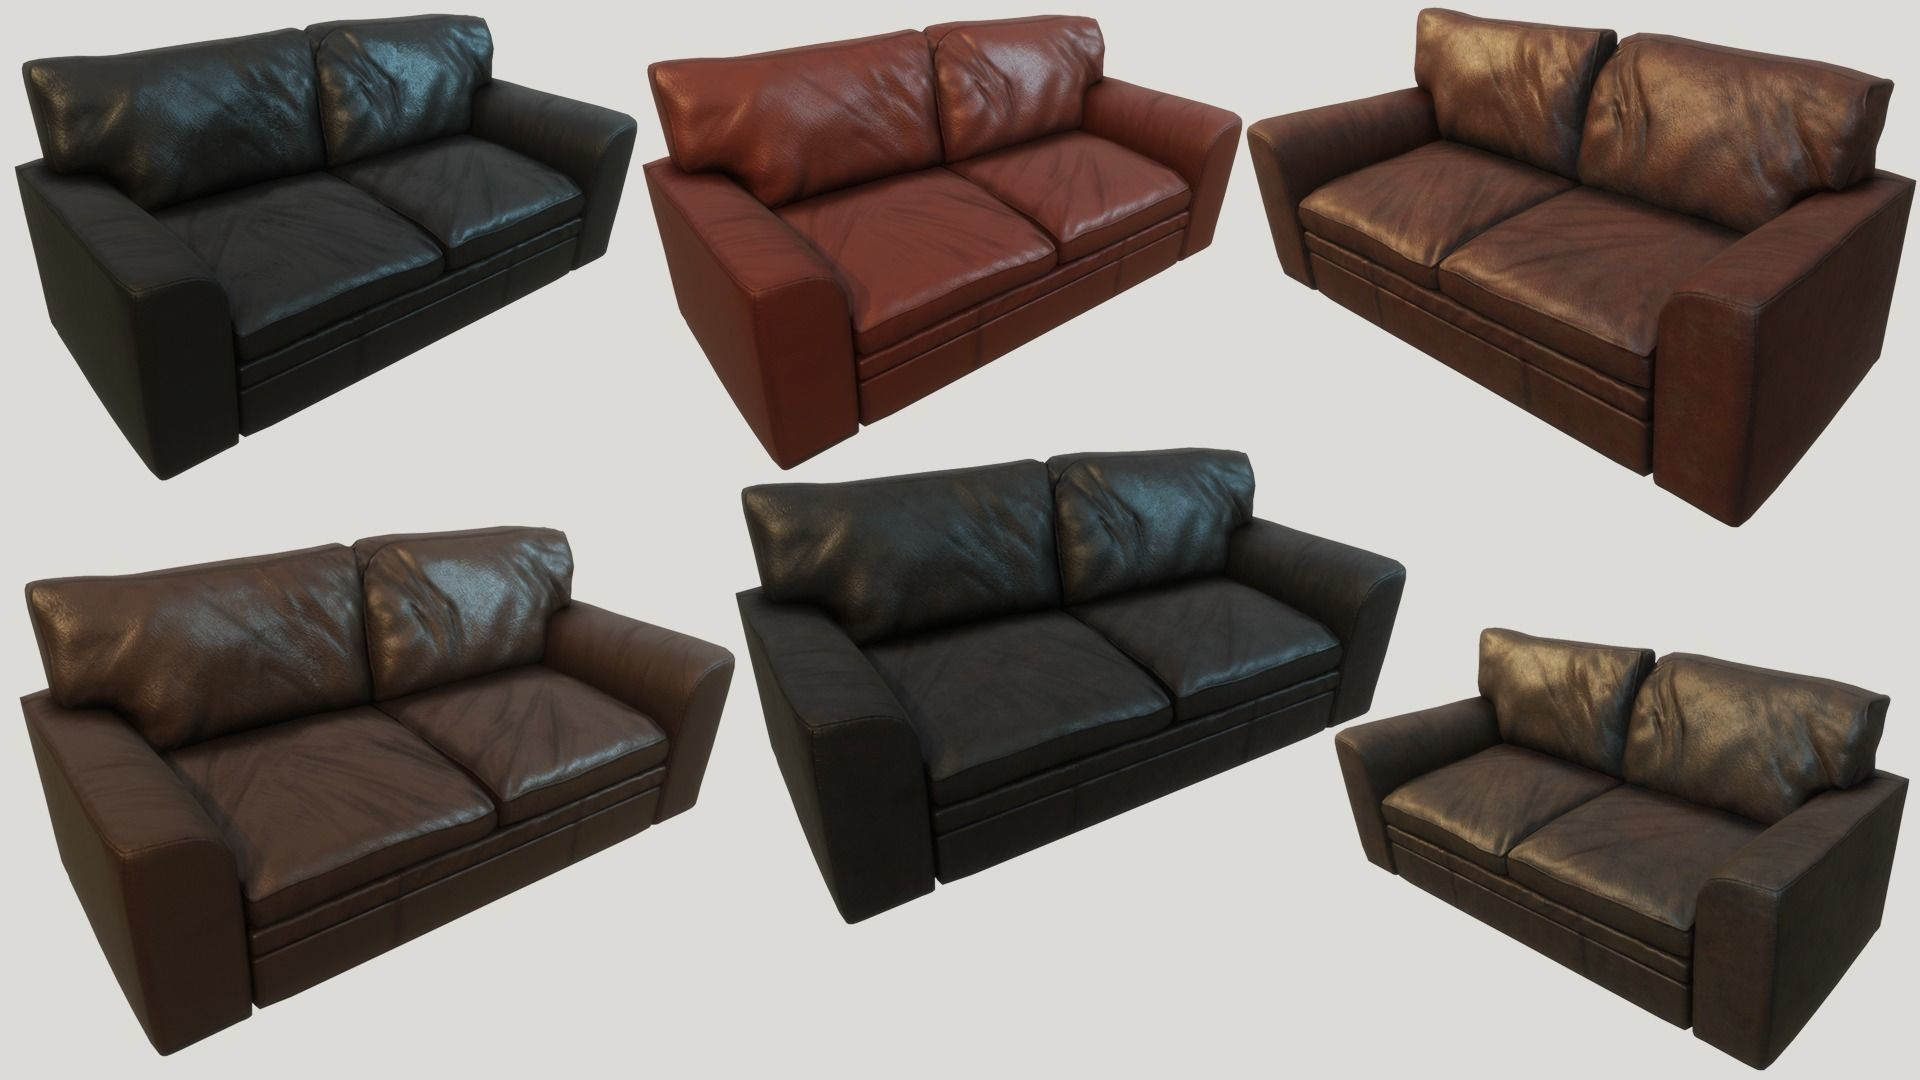 Old Leather Couches PBR   3D model